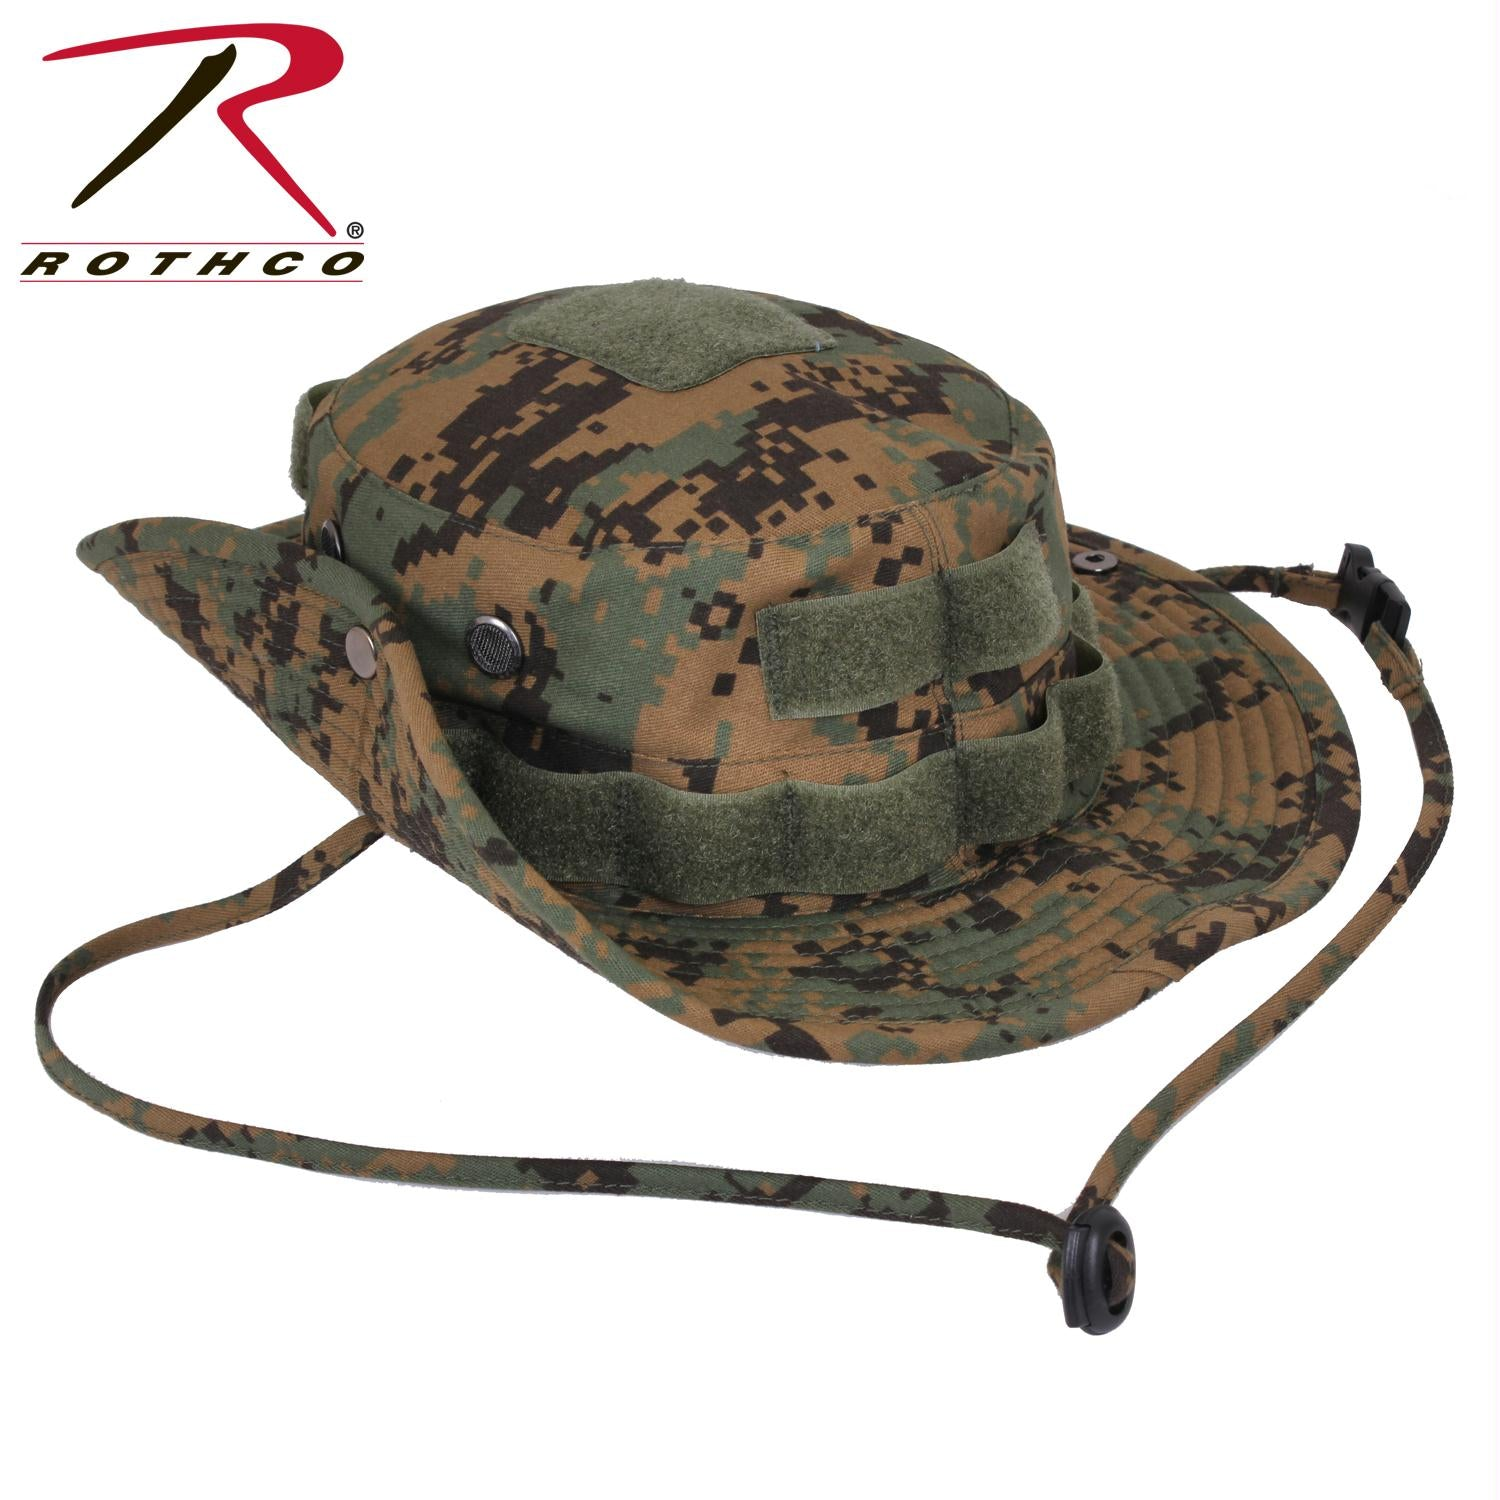 Rothco Tactical Boonie Hat - Woodland Digital Camo / 7 1/2